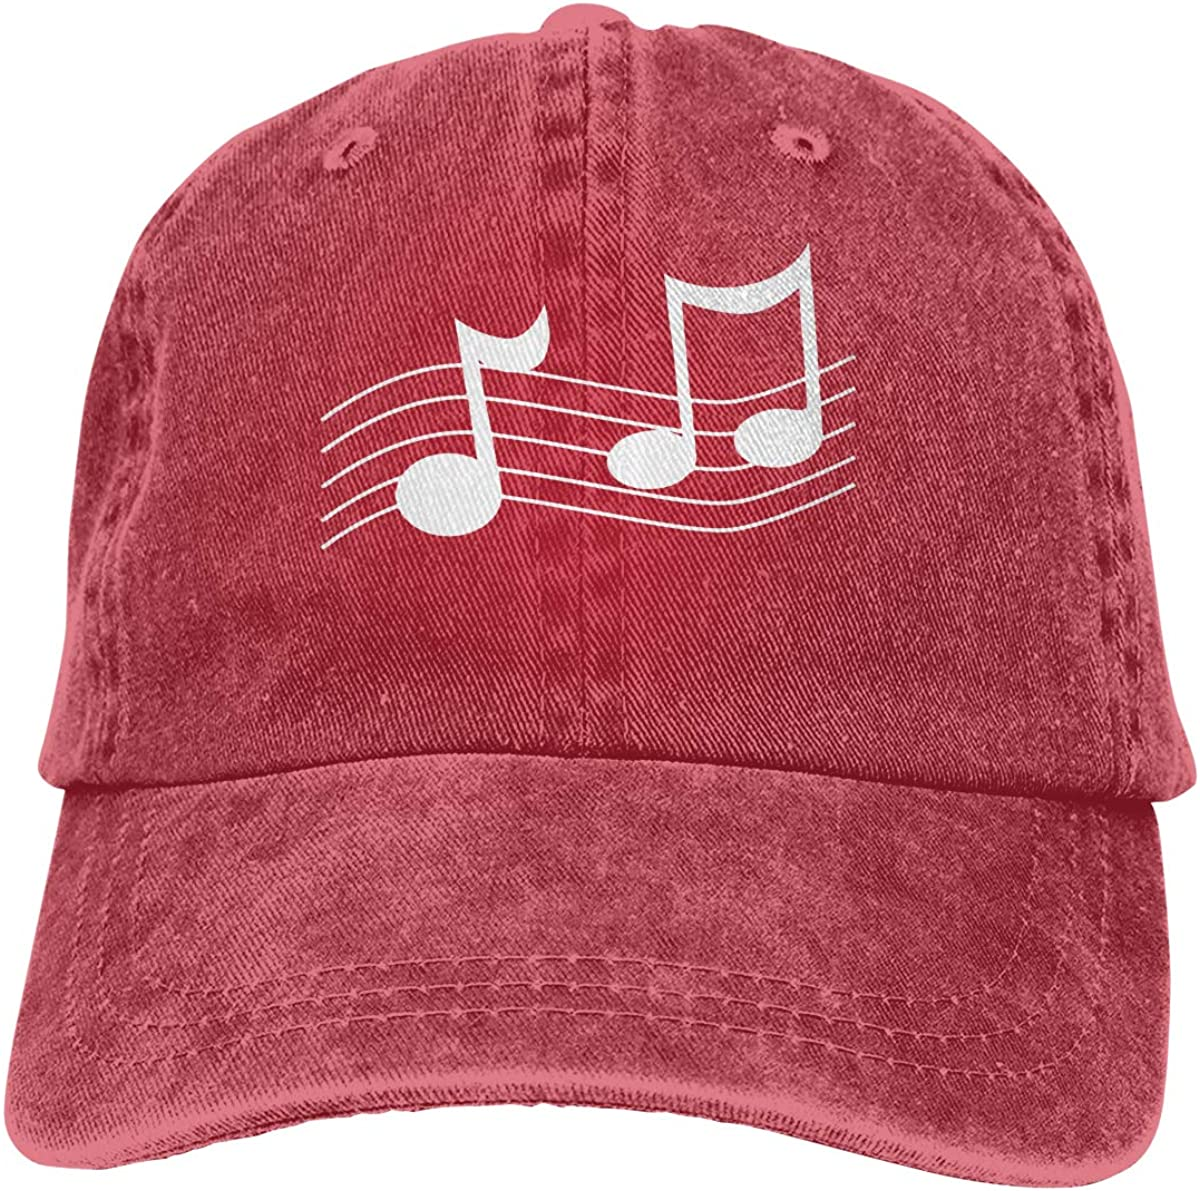 Minimal Music Notes Unisex Adult Cowboy Hat Outdoor Sports Hat Adjustable Truck Driver Hat